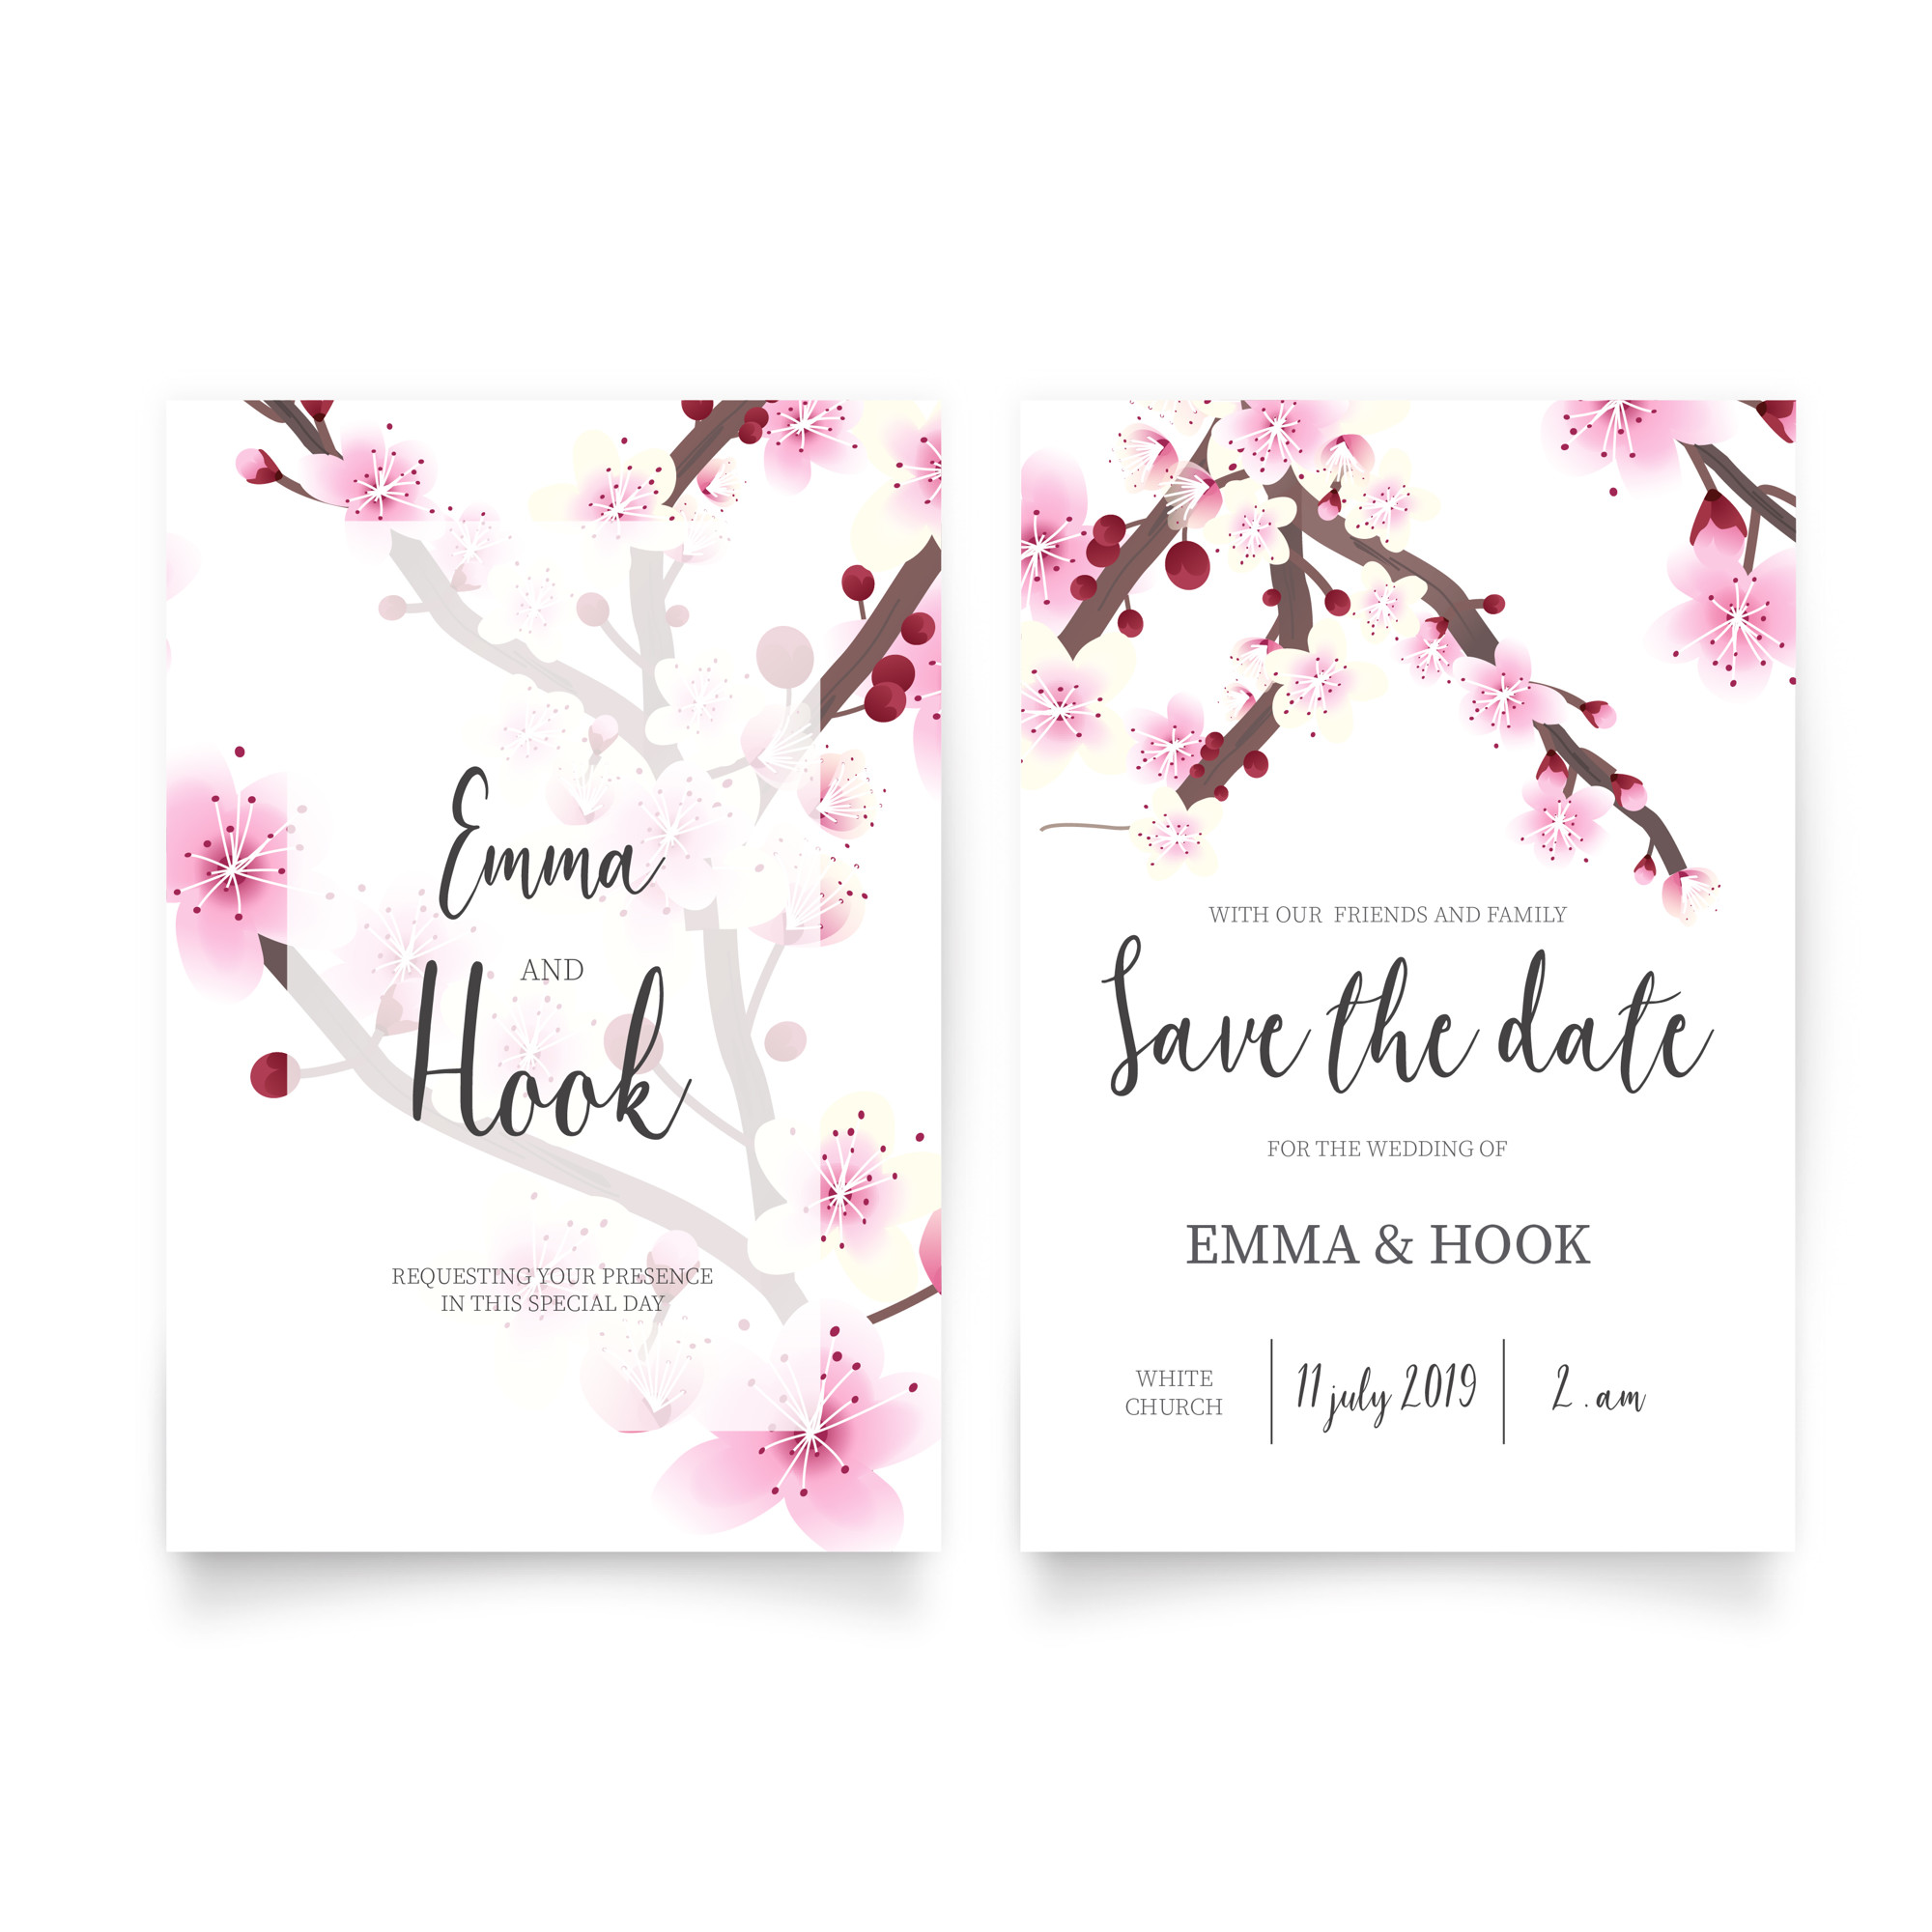 Wedding Invitation with Cherry Blossom Flowers